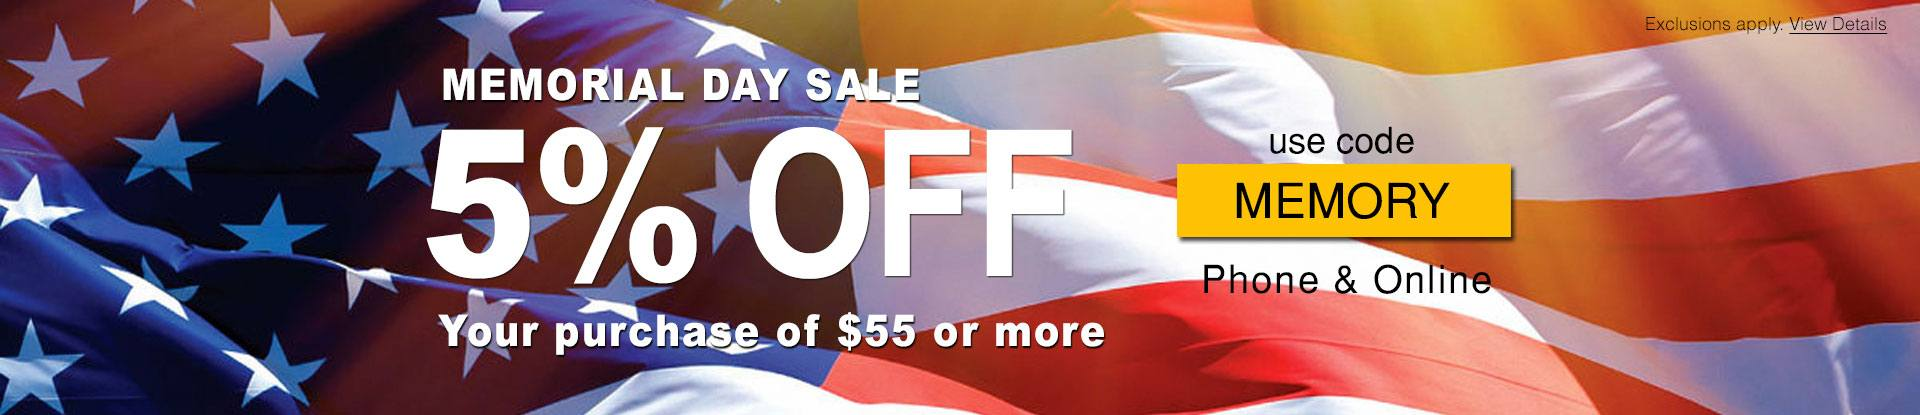 Memorial Day Sale, 5% off orders $55+ with code MEMORY. Ends 5/20